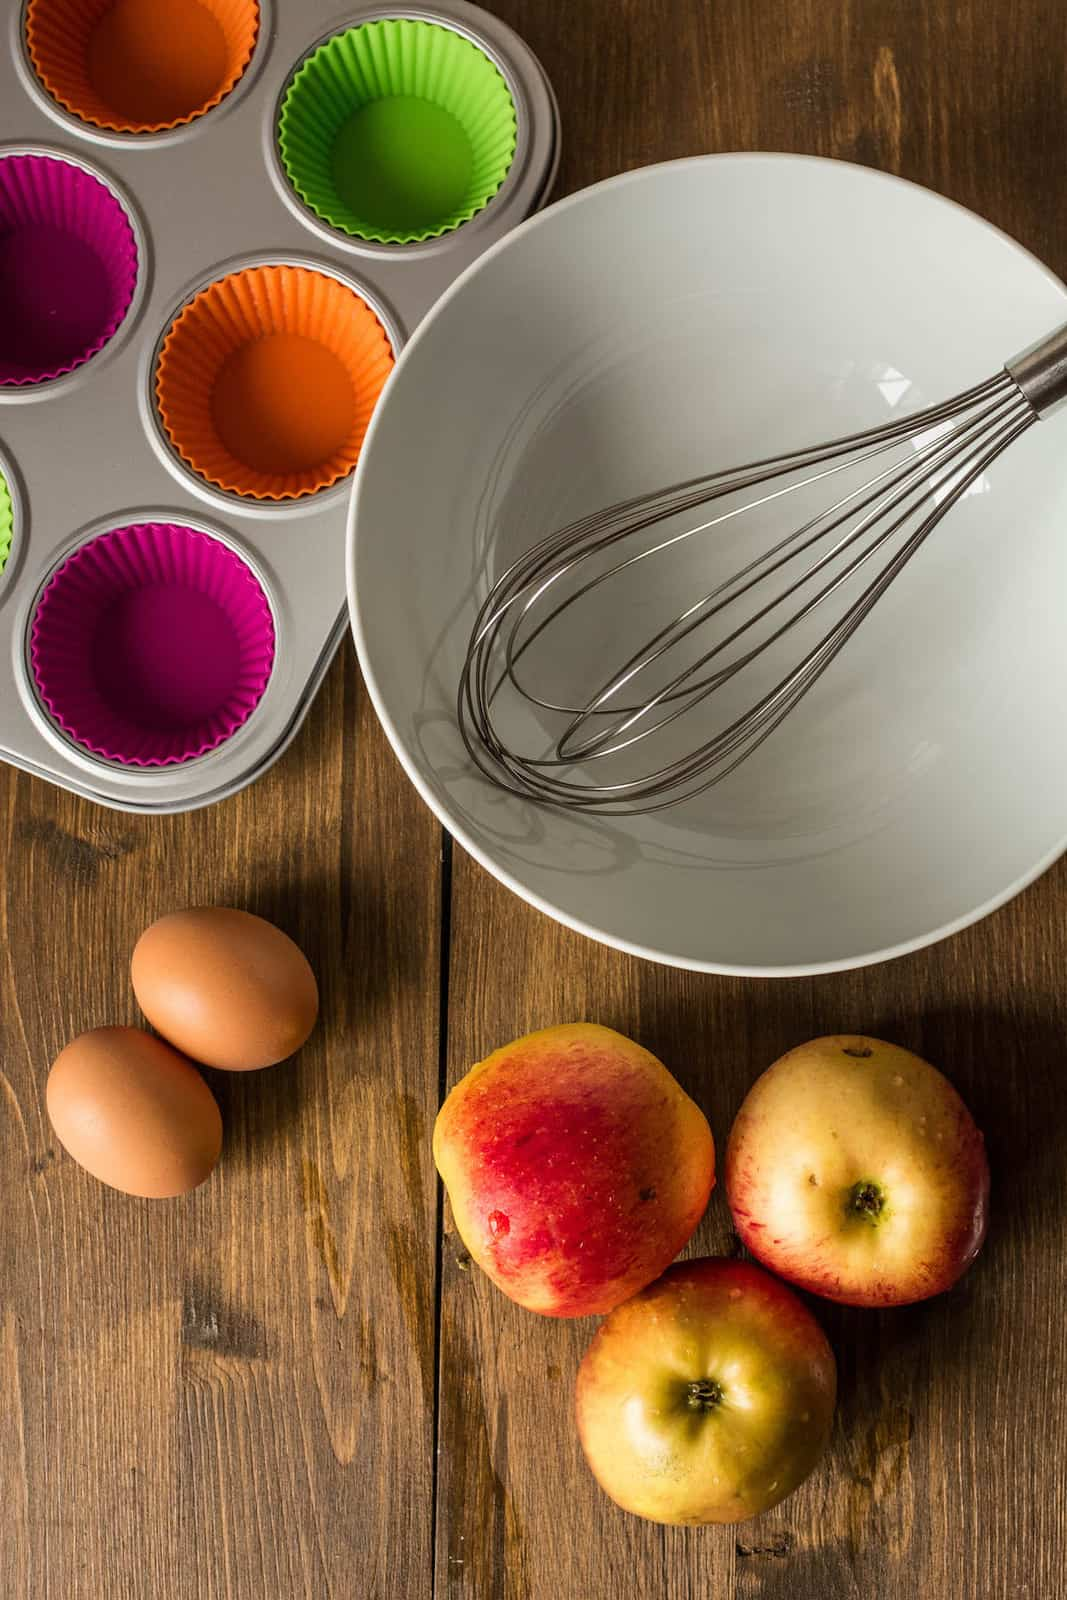 Empty white bowl with whisk in it next to empty muffin tin, apples and eggs on a brown wooden table